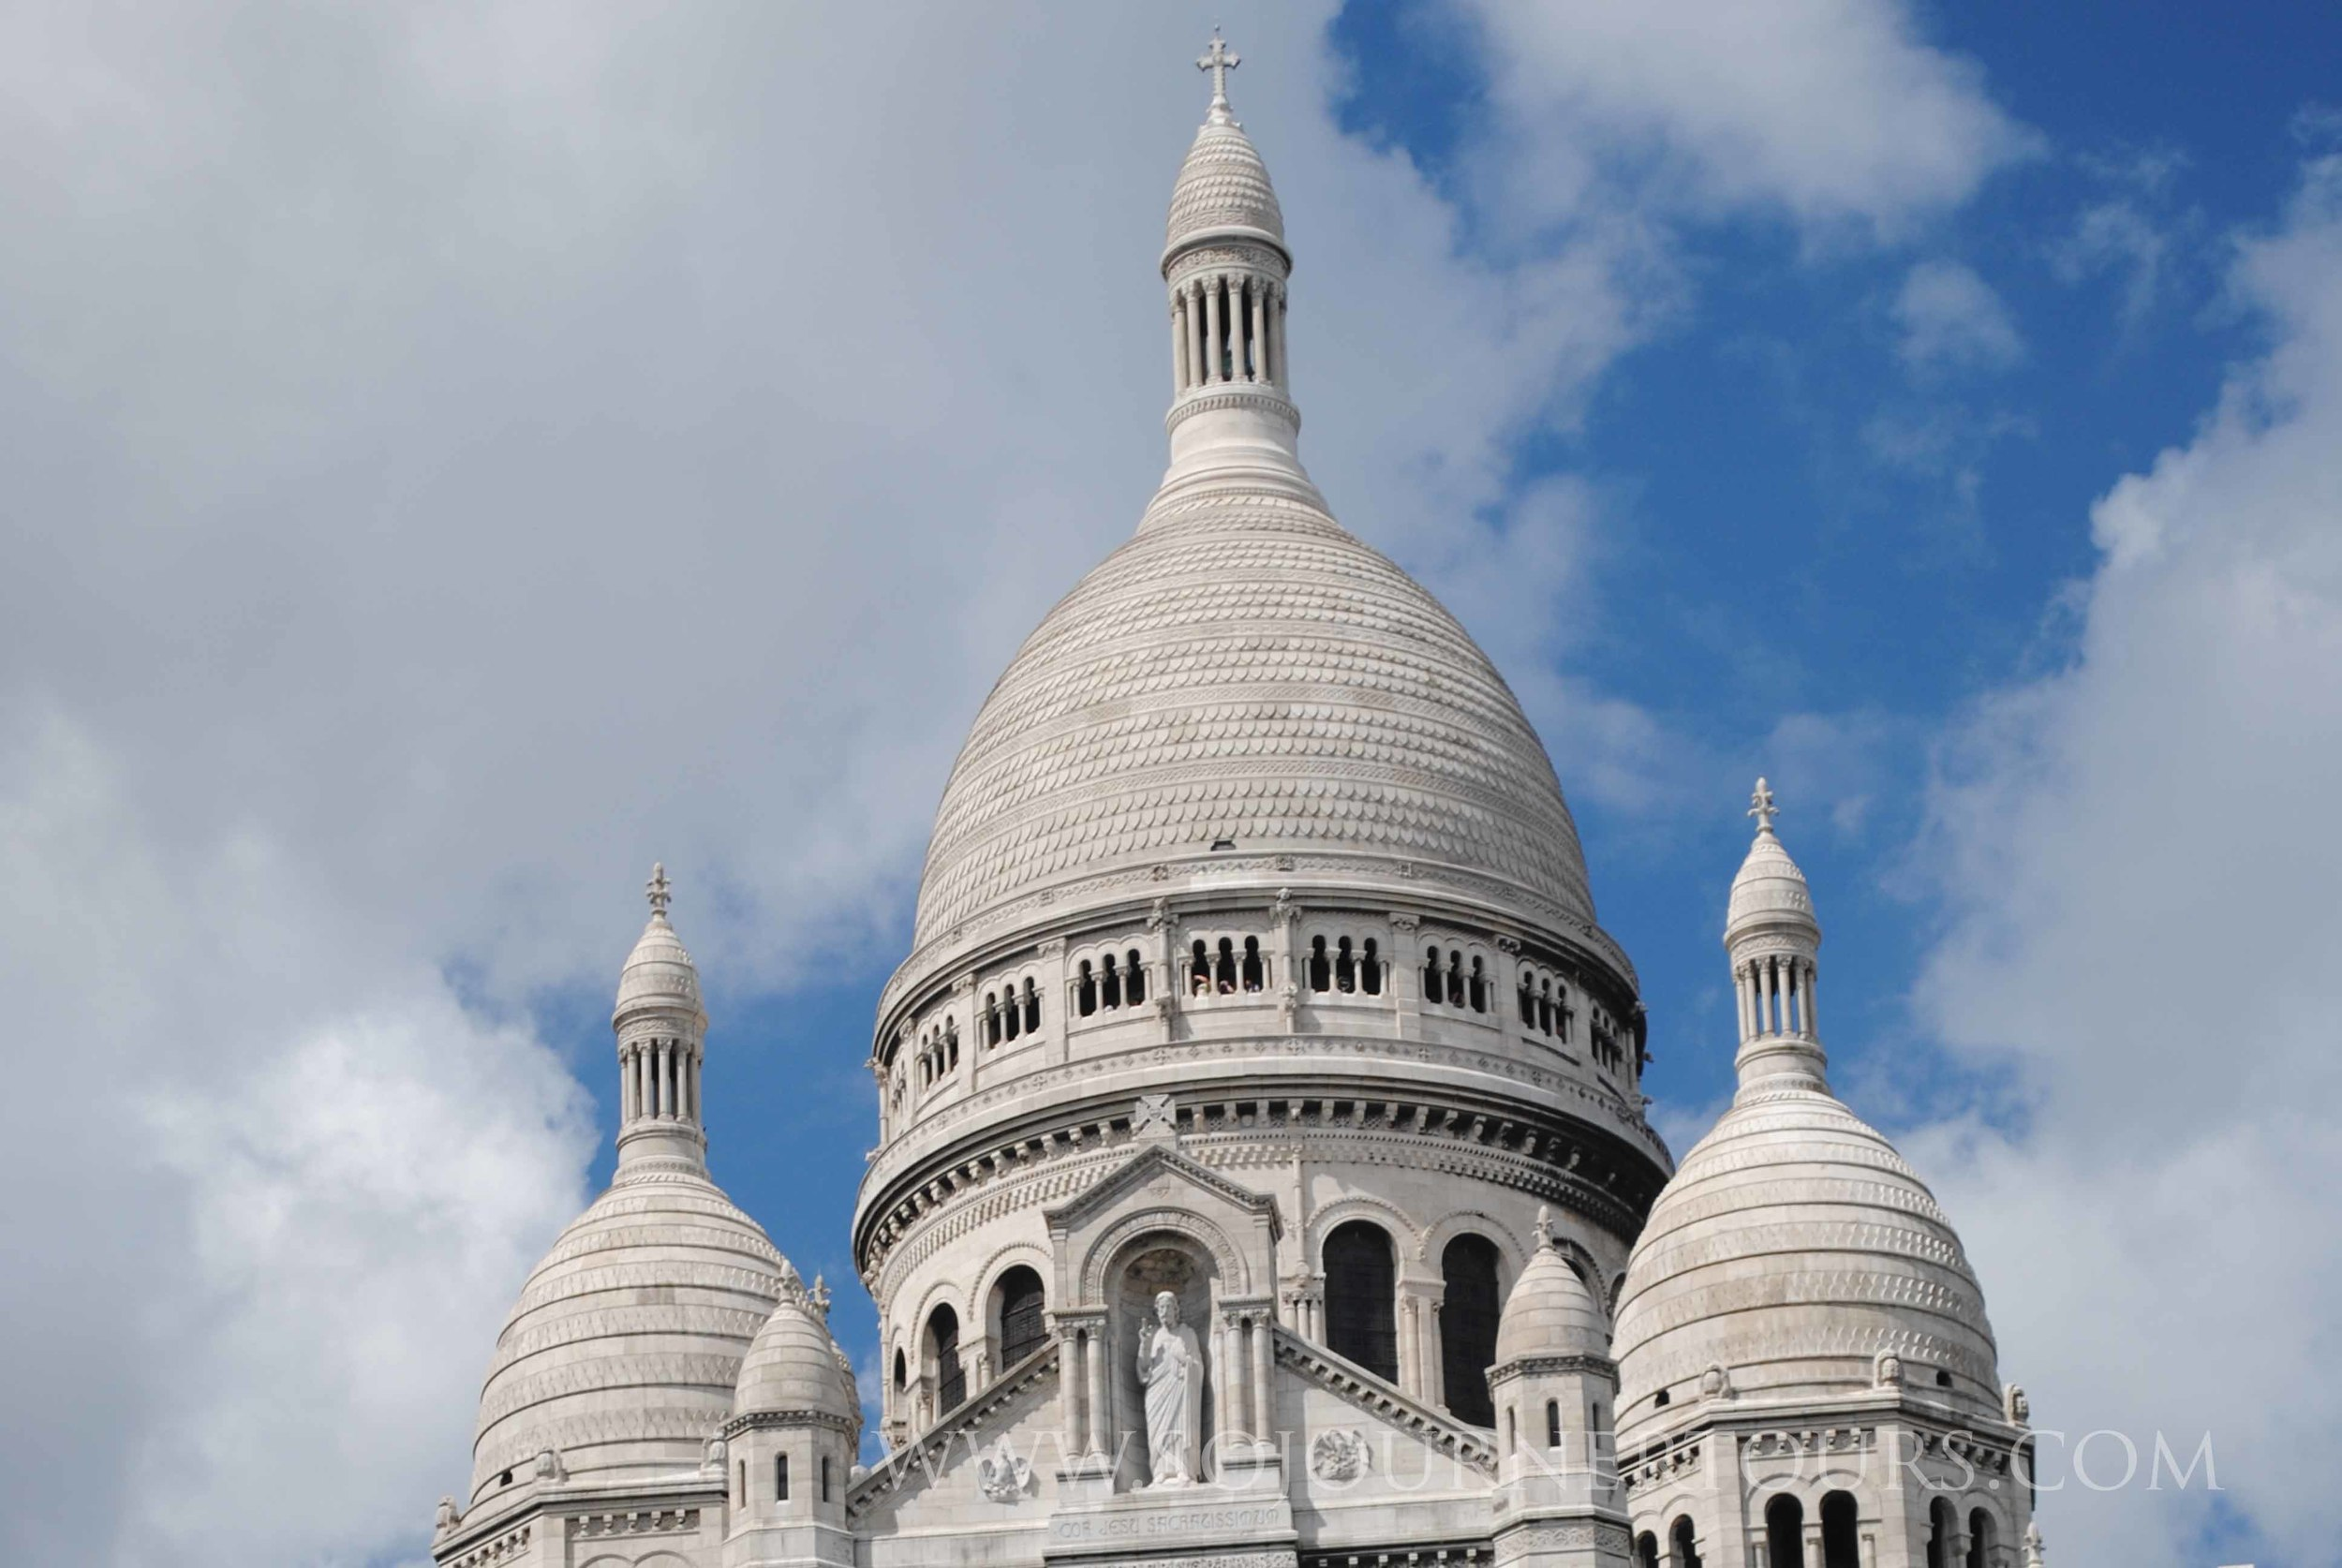 Paris Family Tour Sacre Coeur